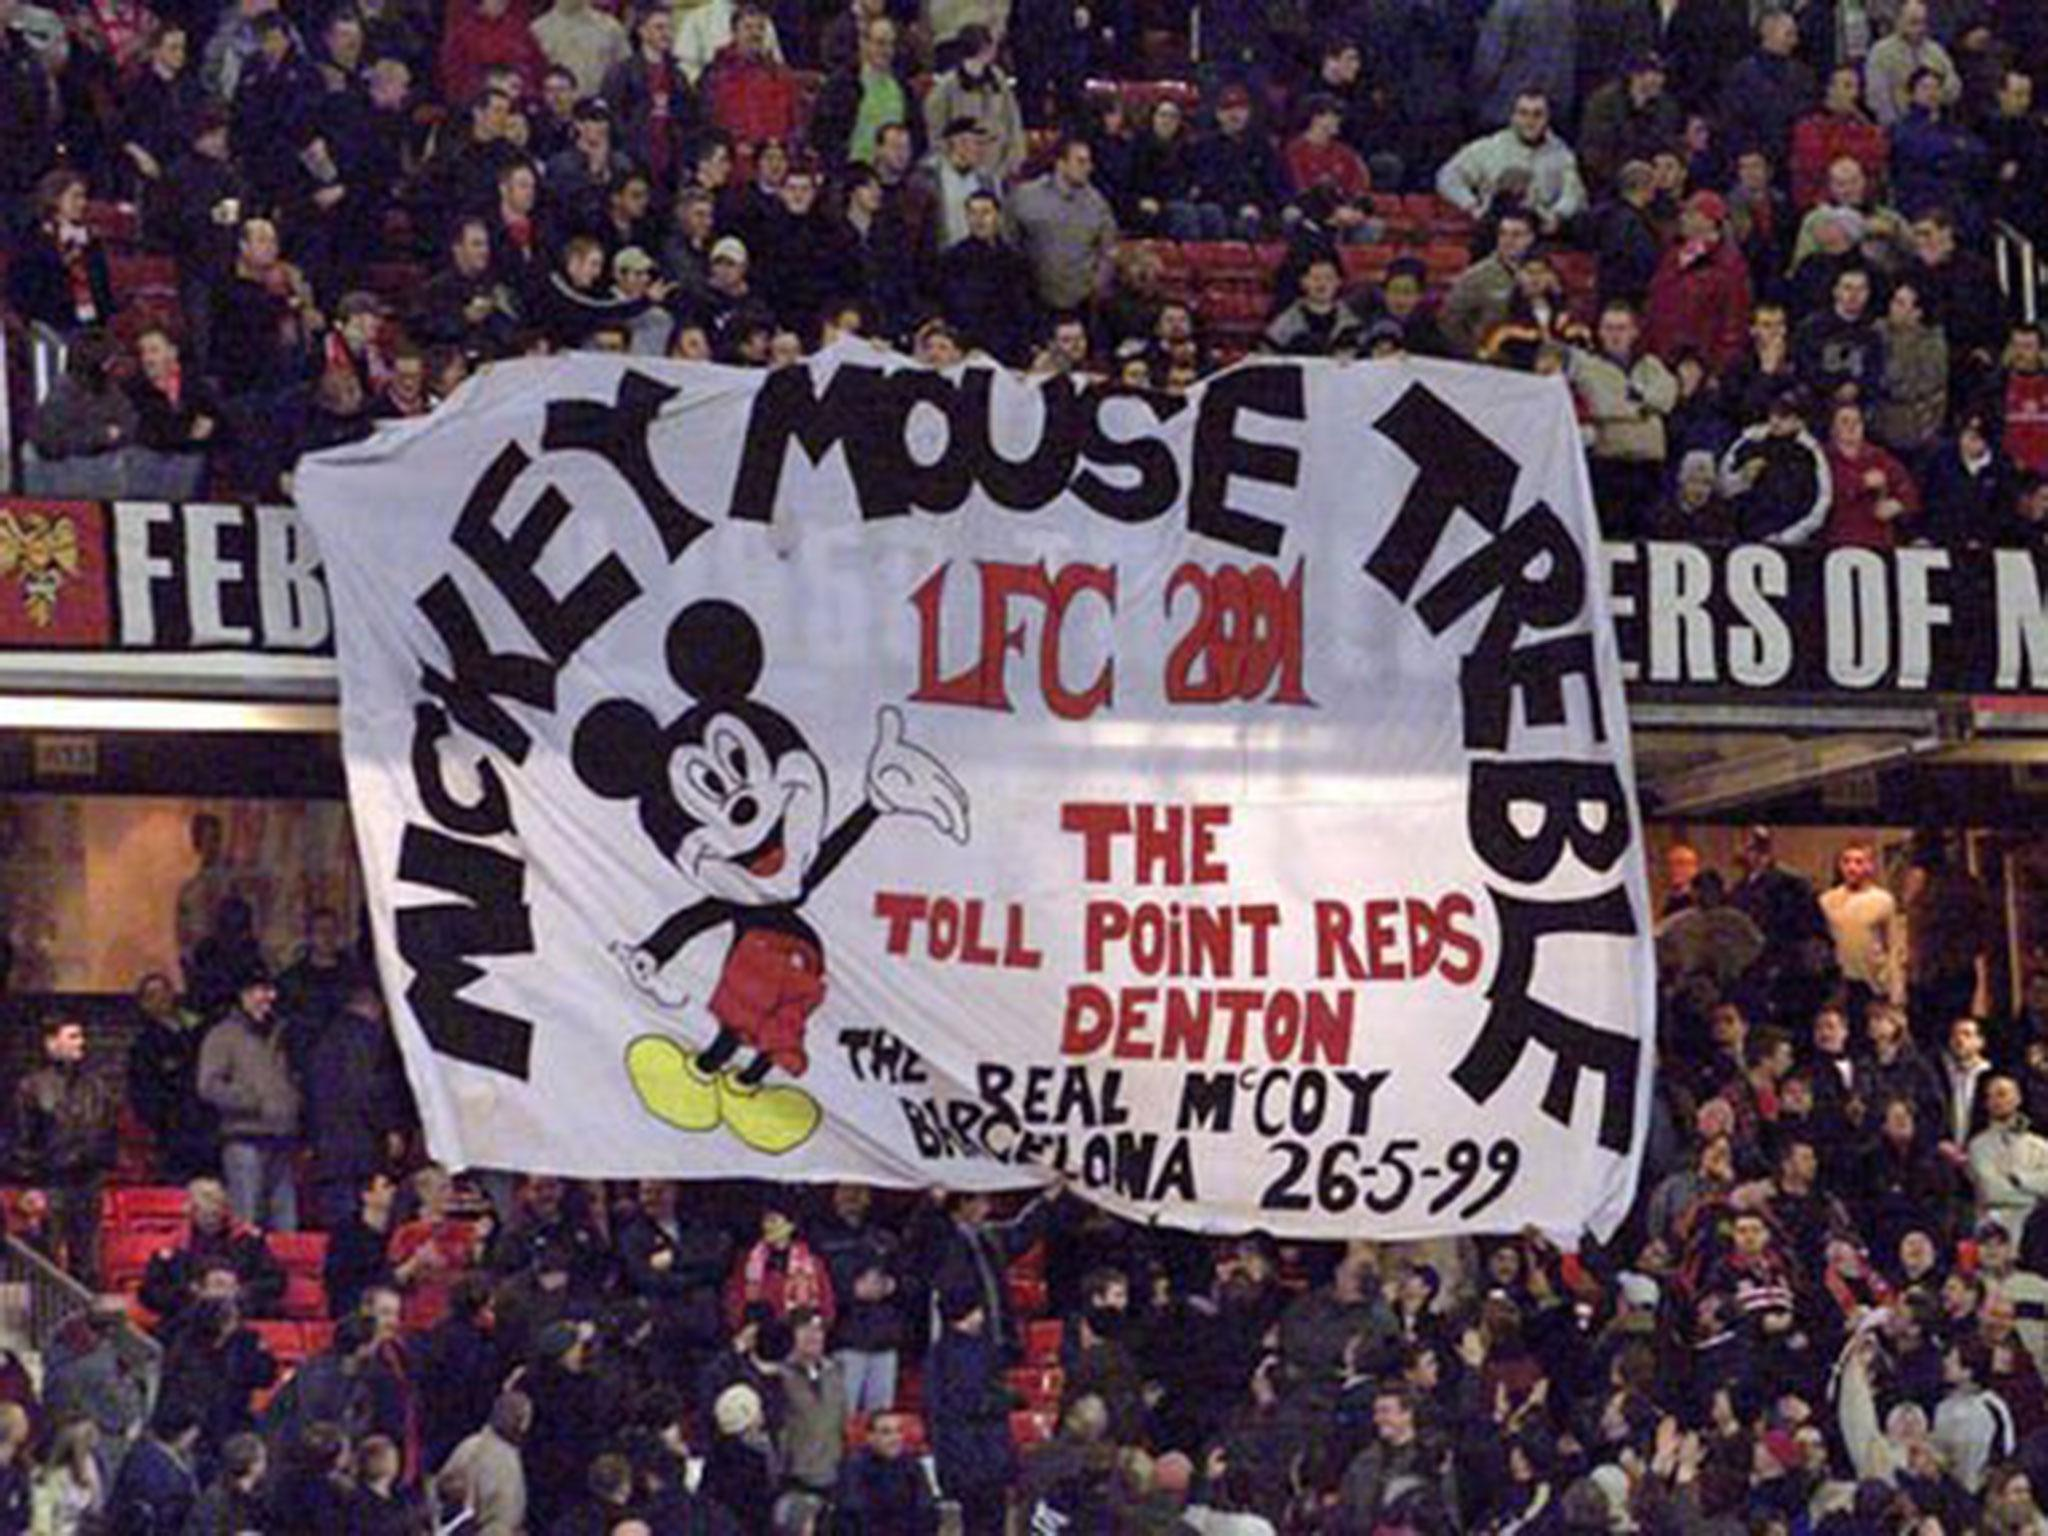 Manchester United Fans May Live To Regret This Banner About